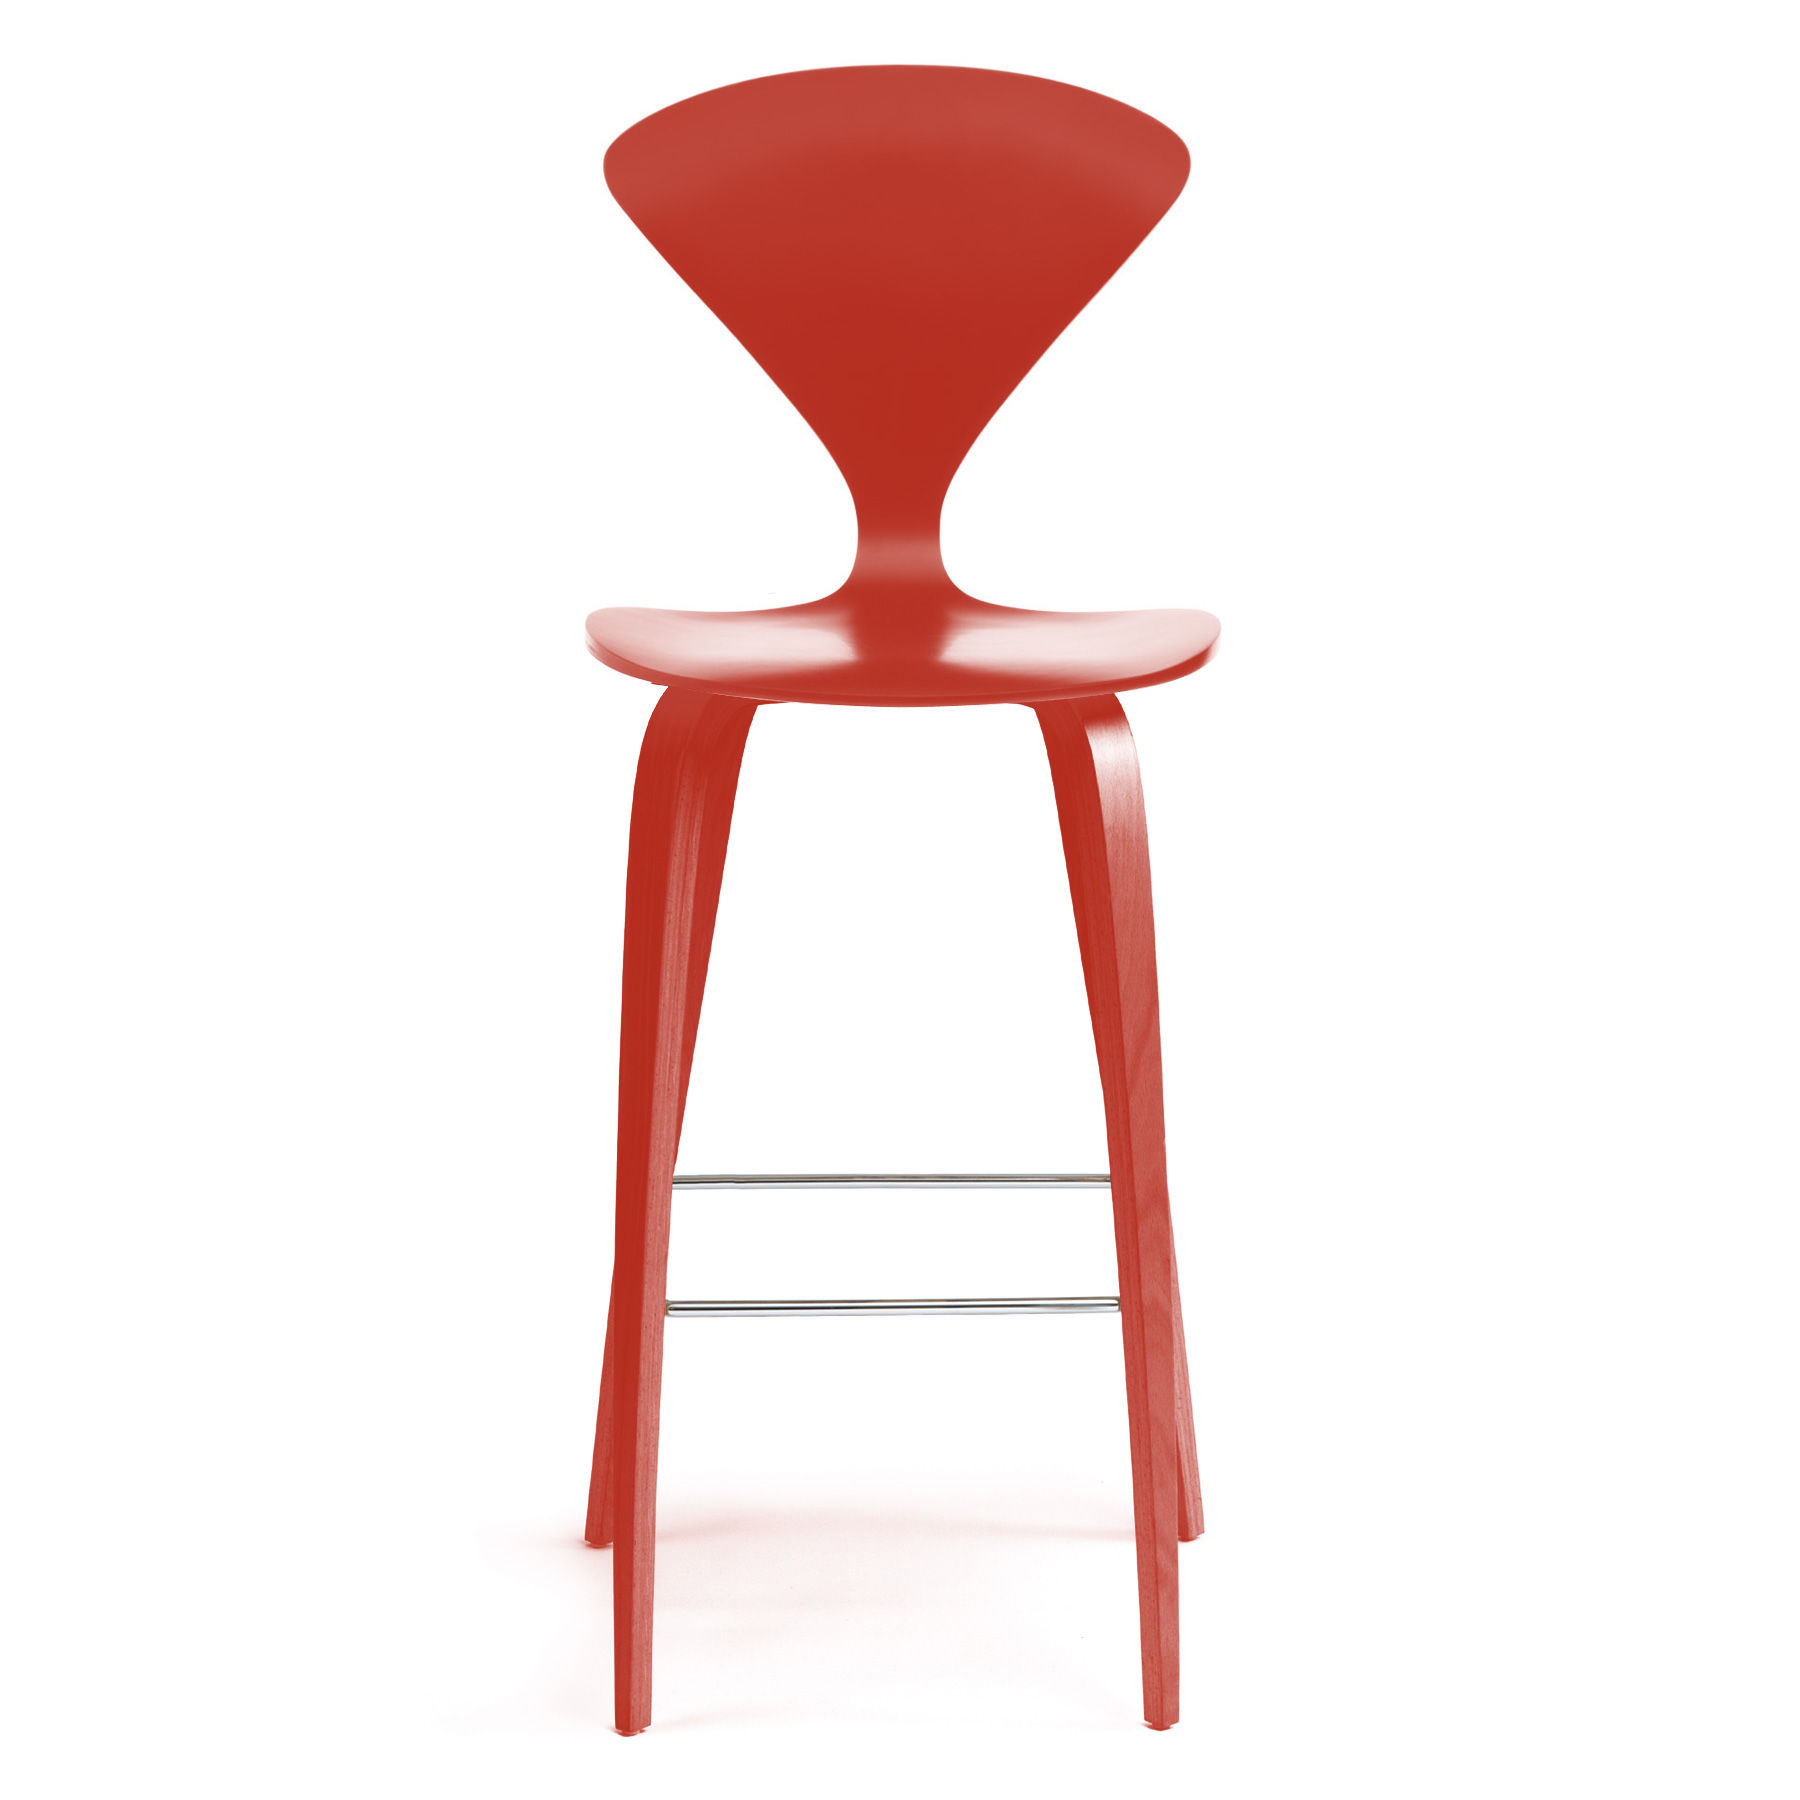 Design Cherner Counter Stool counter stool with wooden legs the original cherner original